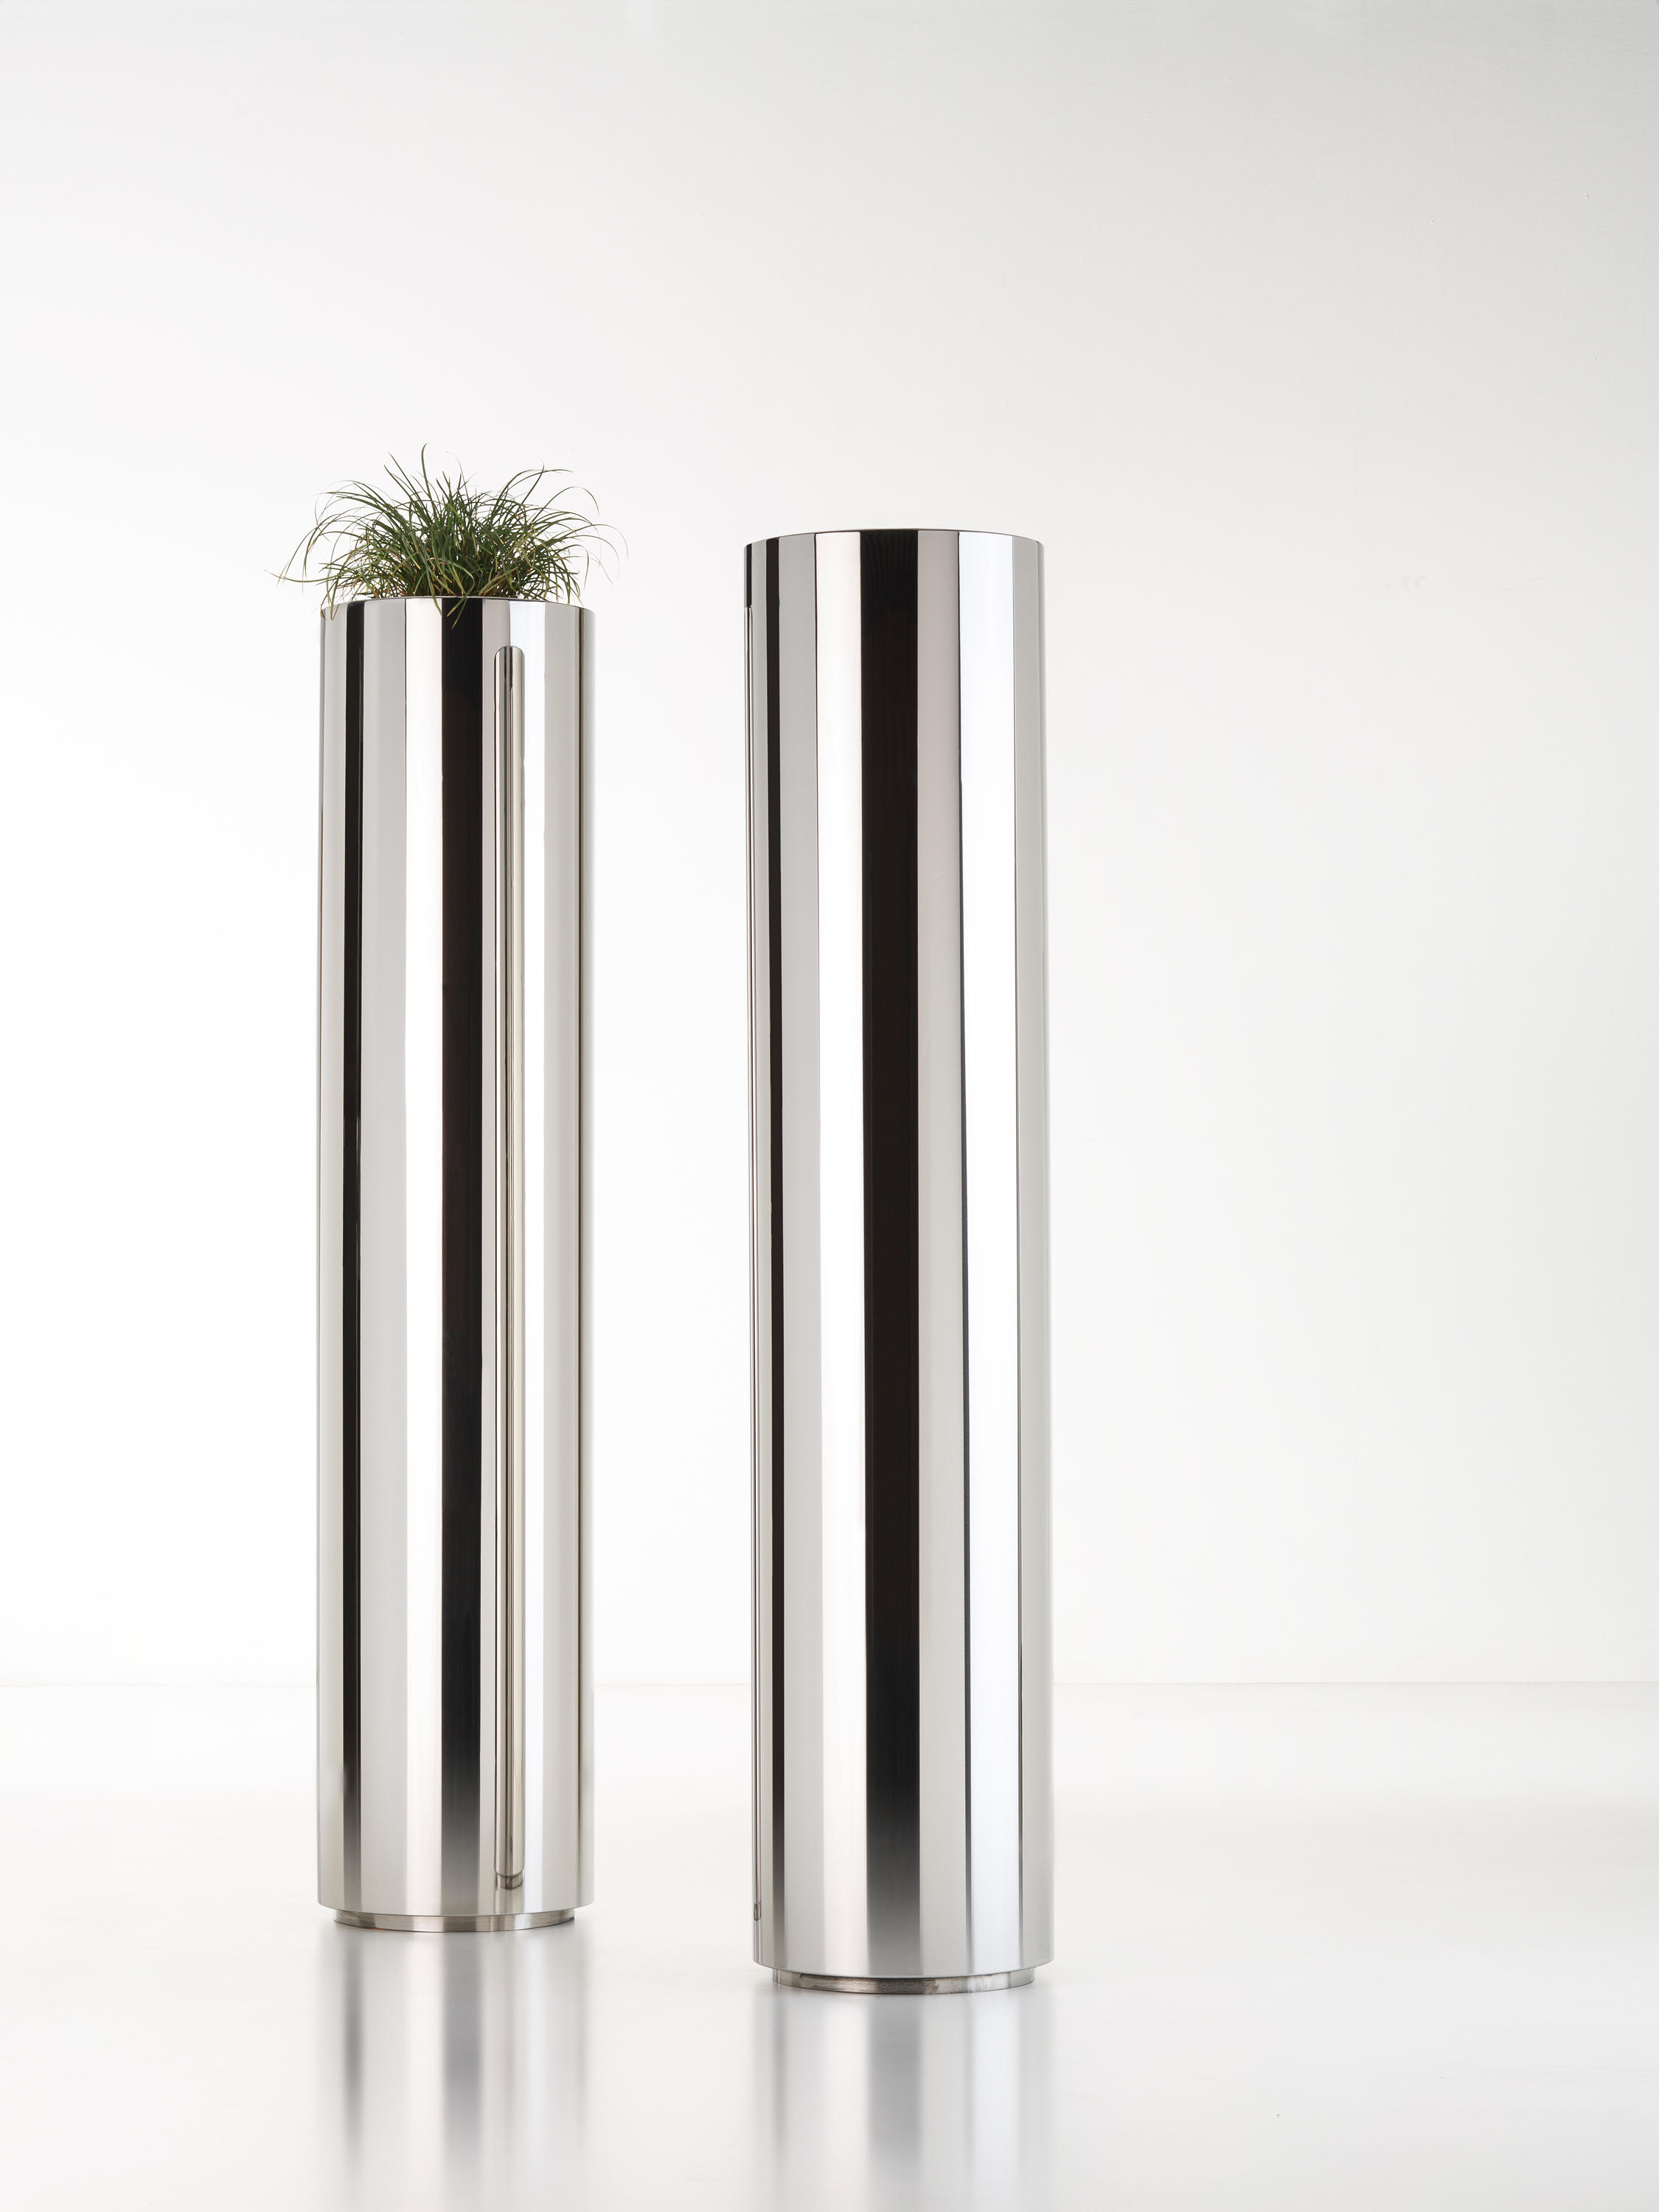 Cohiba Metal Cachepot - A pure cylindrical shape comes in De Castelli metals and finishes for a series of cachepots with abounding stage presence. In their linear simplicity, these objects become landmarks for the home, not just accessories but also cardinal points that orient the space. In different heights and diameters, they stand alone or make up multi-faceted sets.  Cylindrical metal cachepot. Closedbase for indoors or perforated base foroutdoors. Provided with an inner plasticpot to hold plants. Fixing plate availableon request. | Matter of Stuff